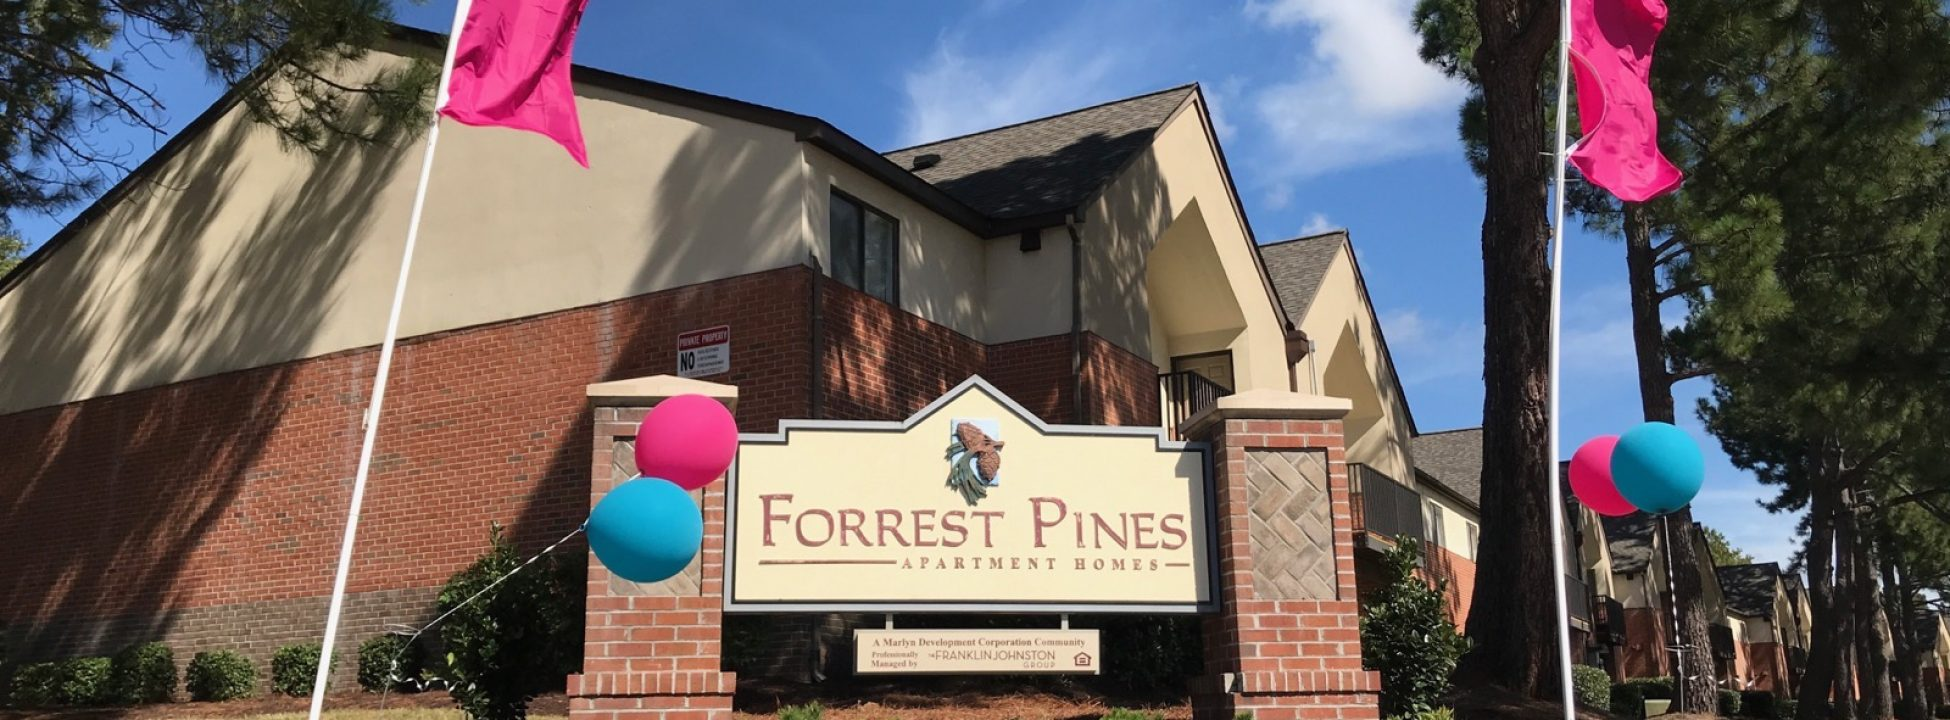 Forrest Pines Apartment & Townhomes